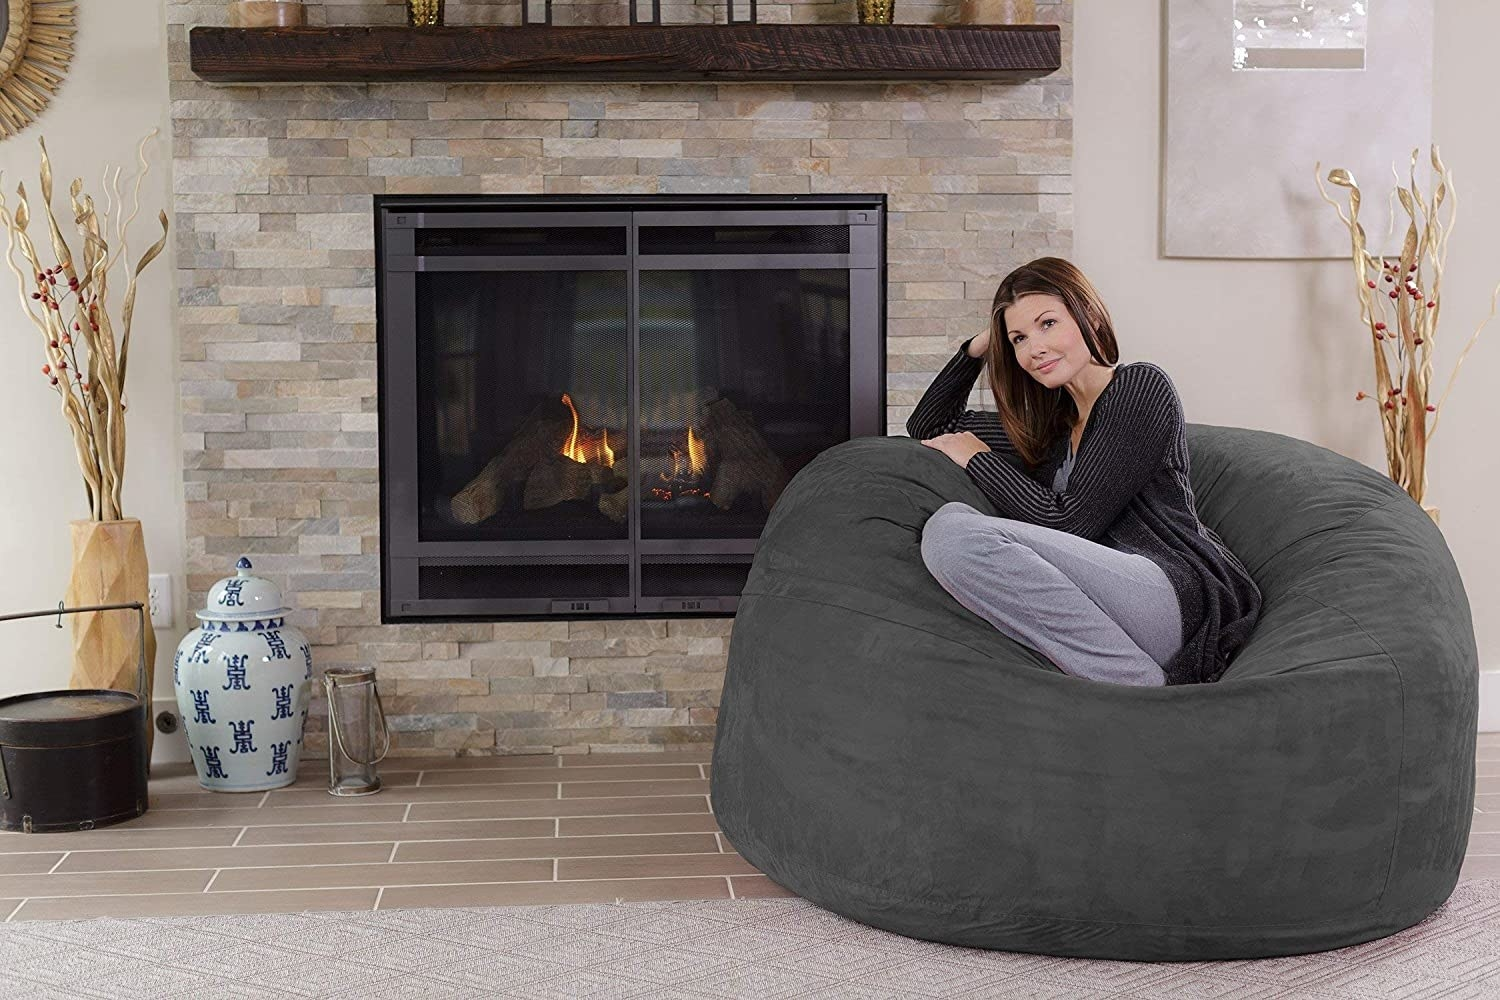 A person sitting in the bean bag chair by a fireplace